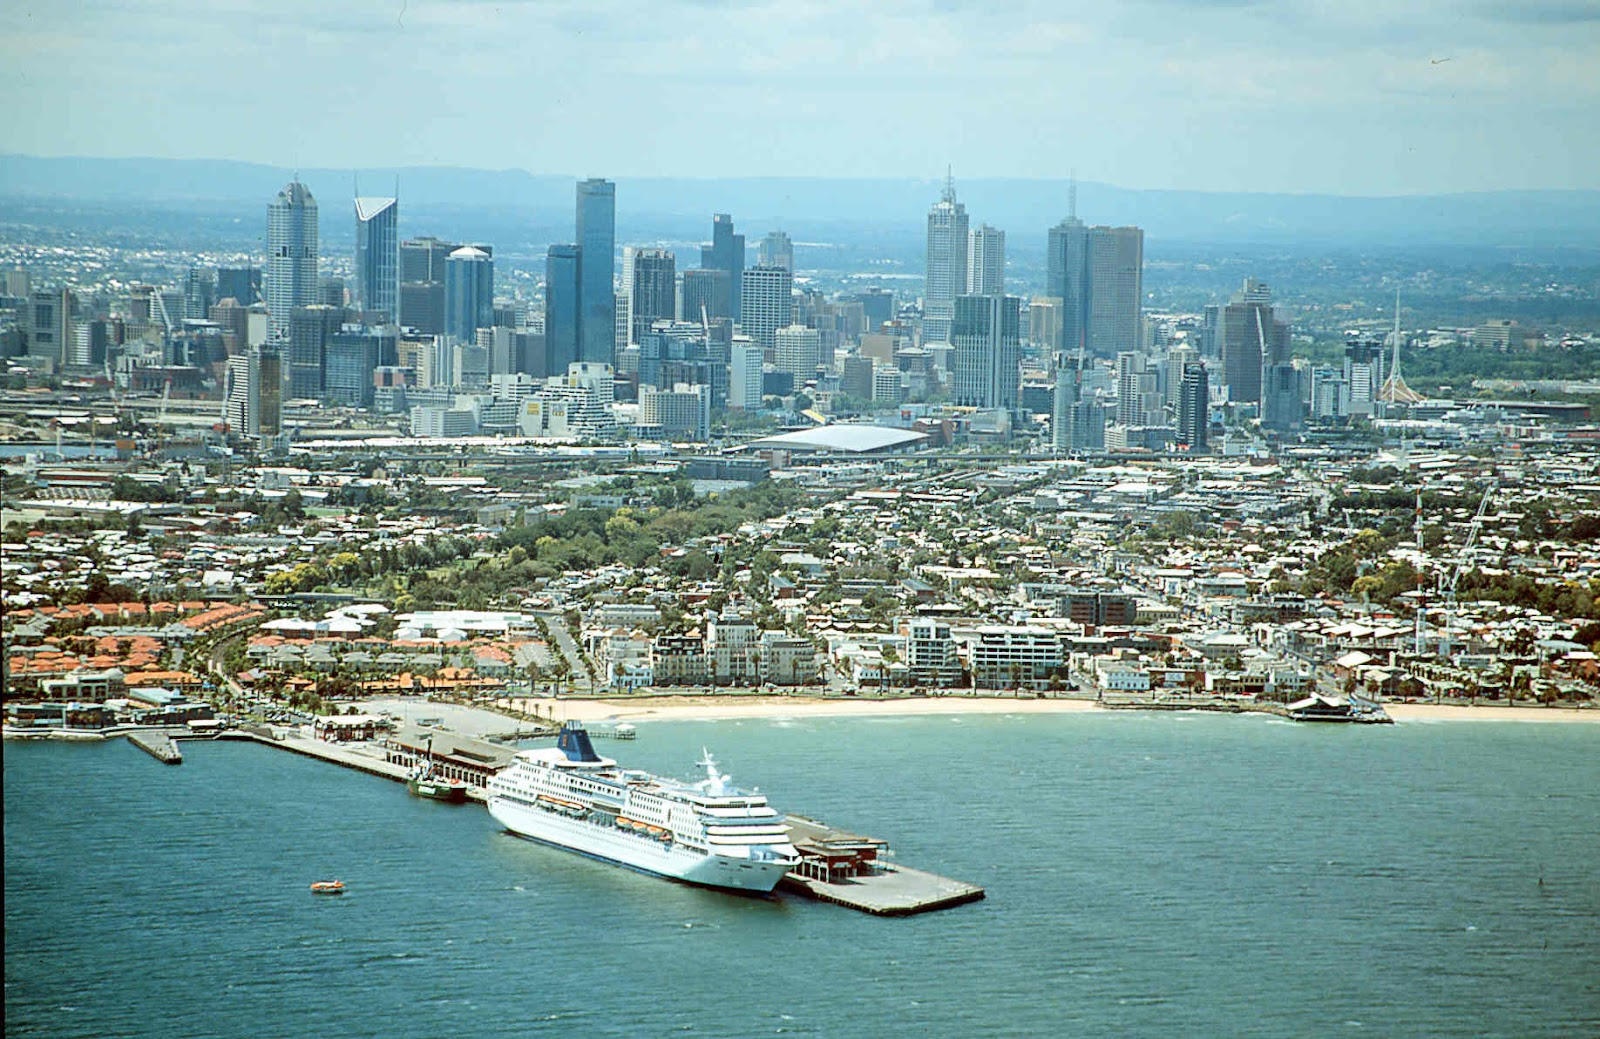 Melbourne australia travel guide and travel info for Best beach travel destinations